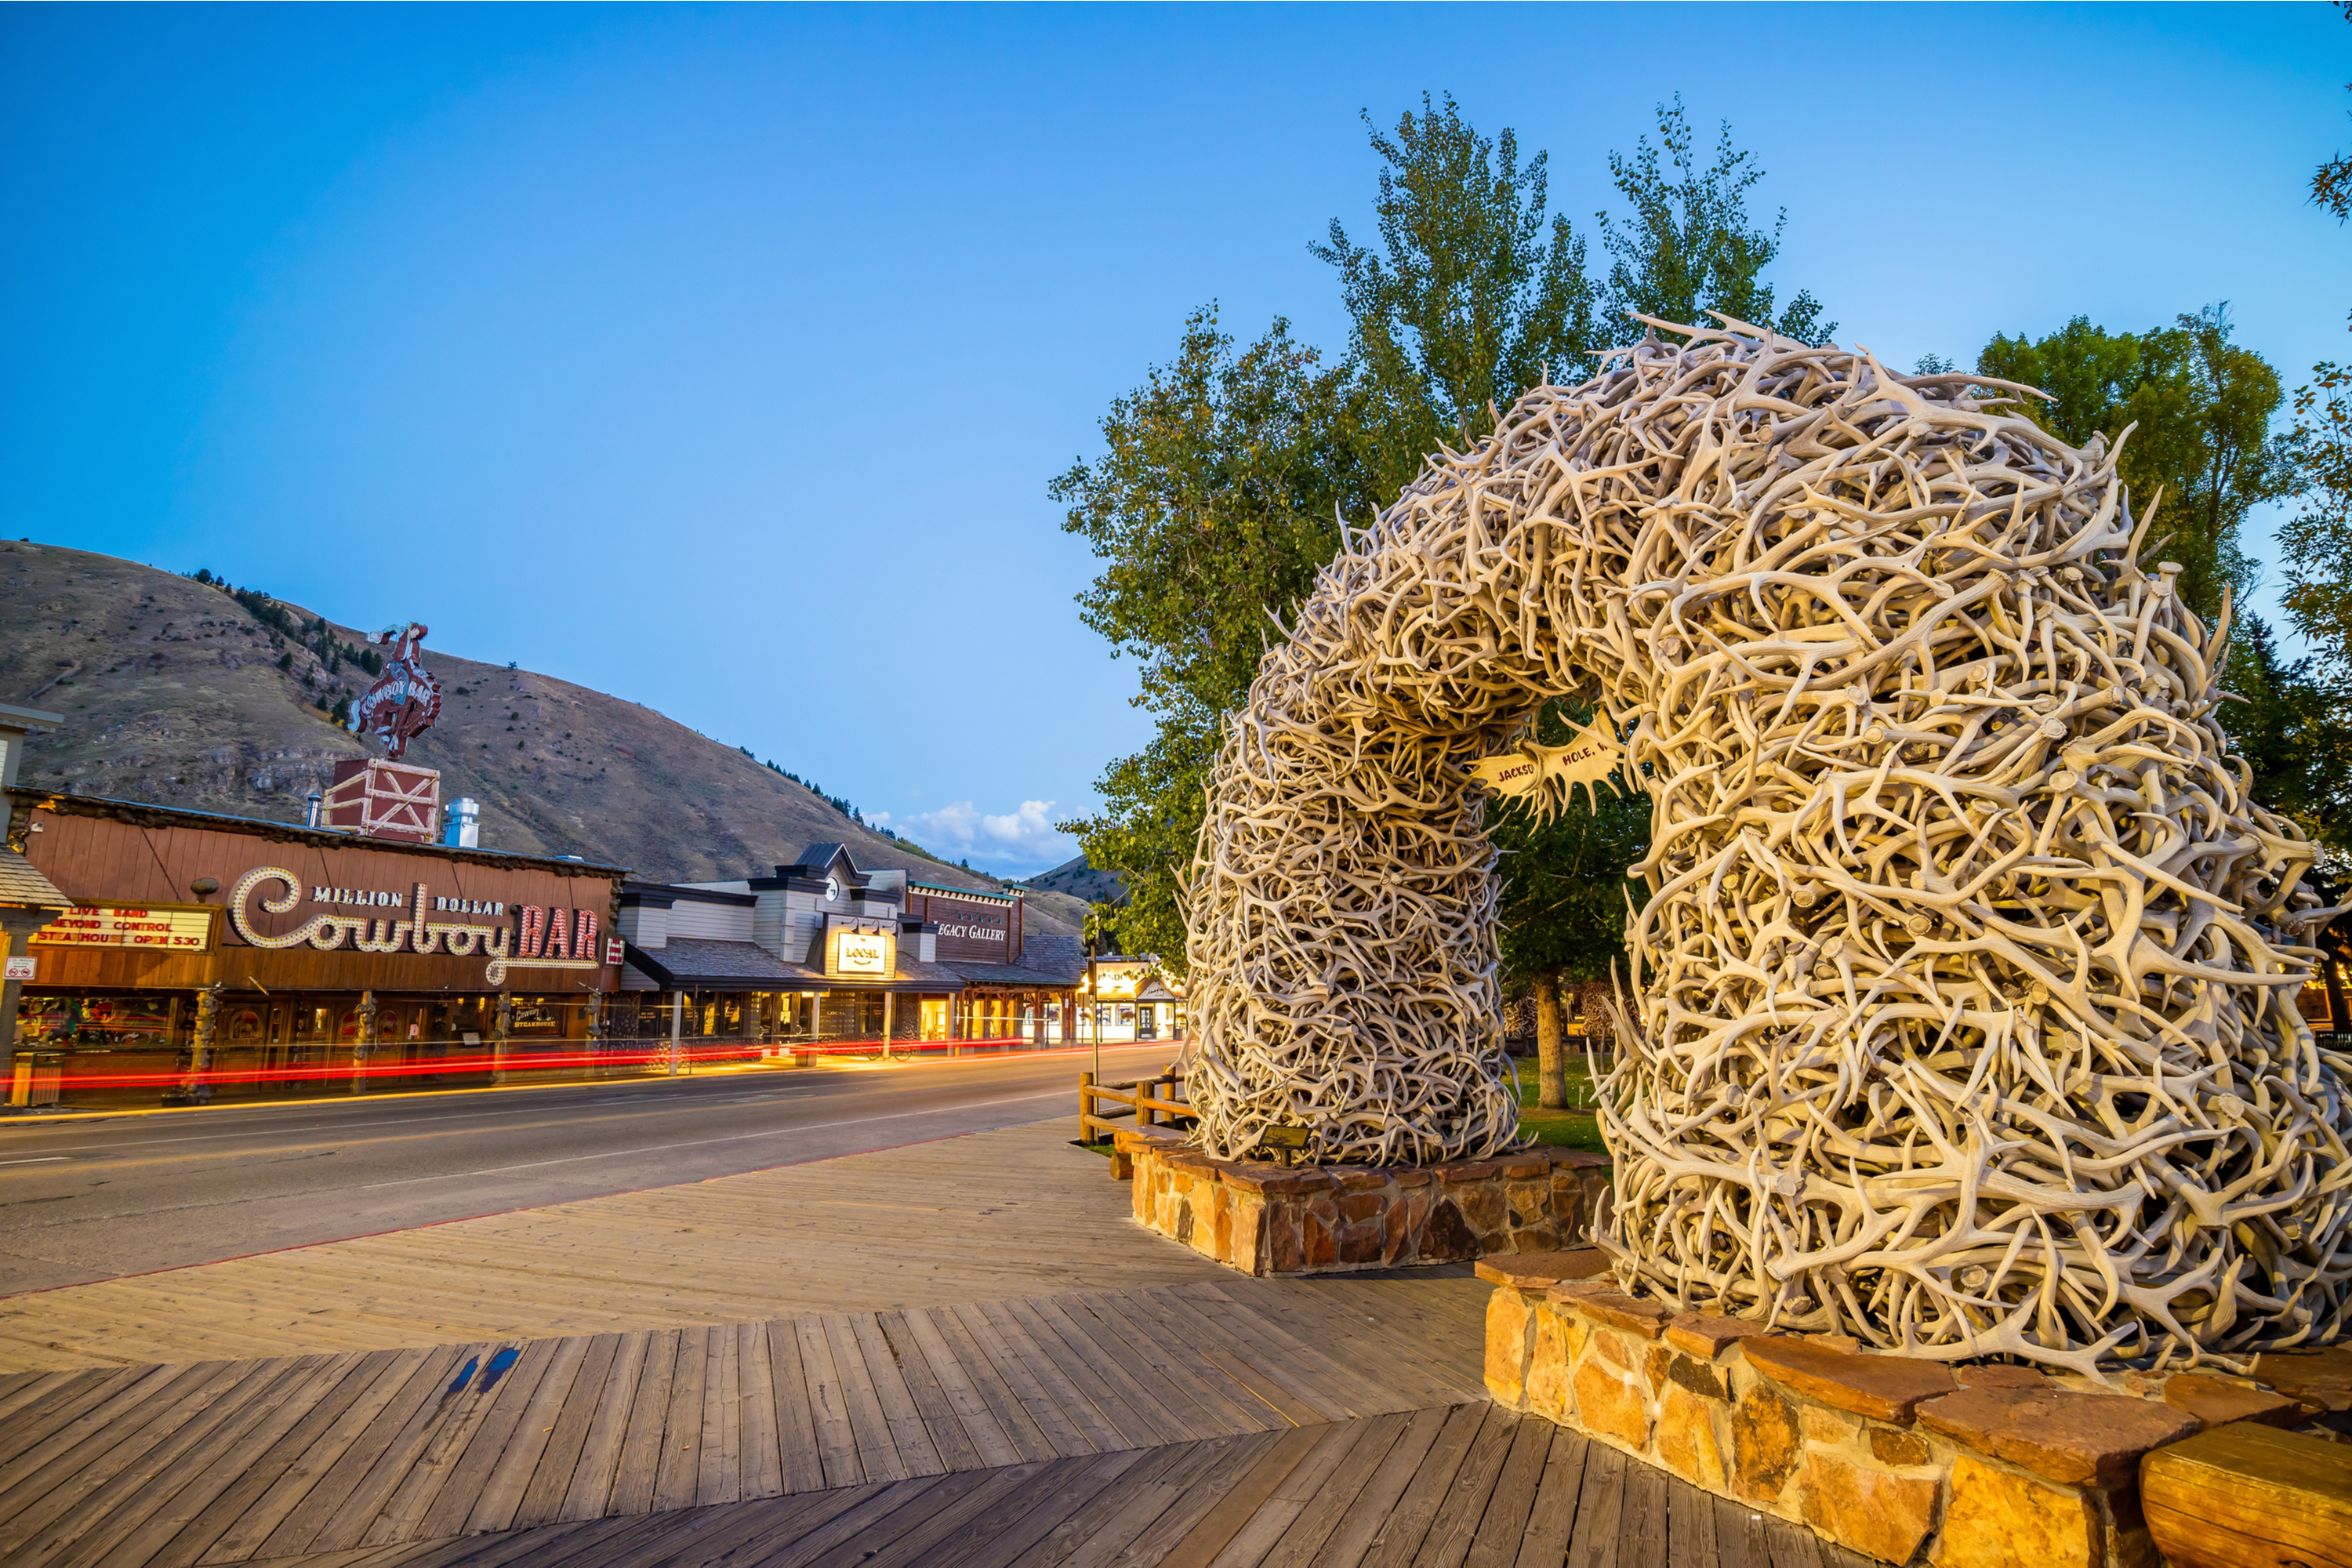 If you have never been to Jackson Hole, Wyoming, it should be at the top of your list! Here are the best tips to help you make the best of your time in Jackson Hole.